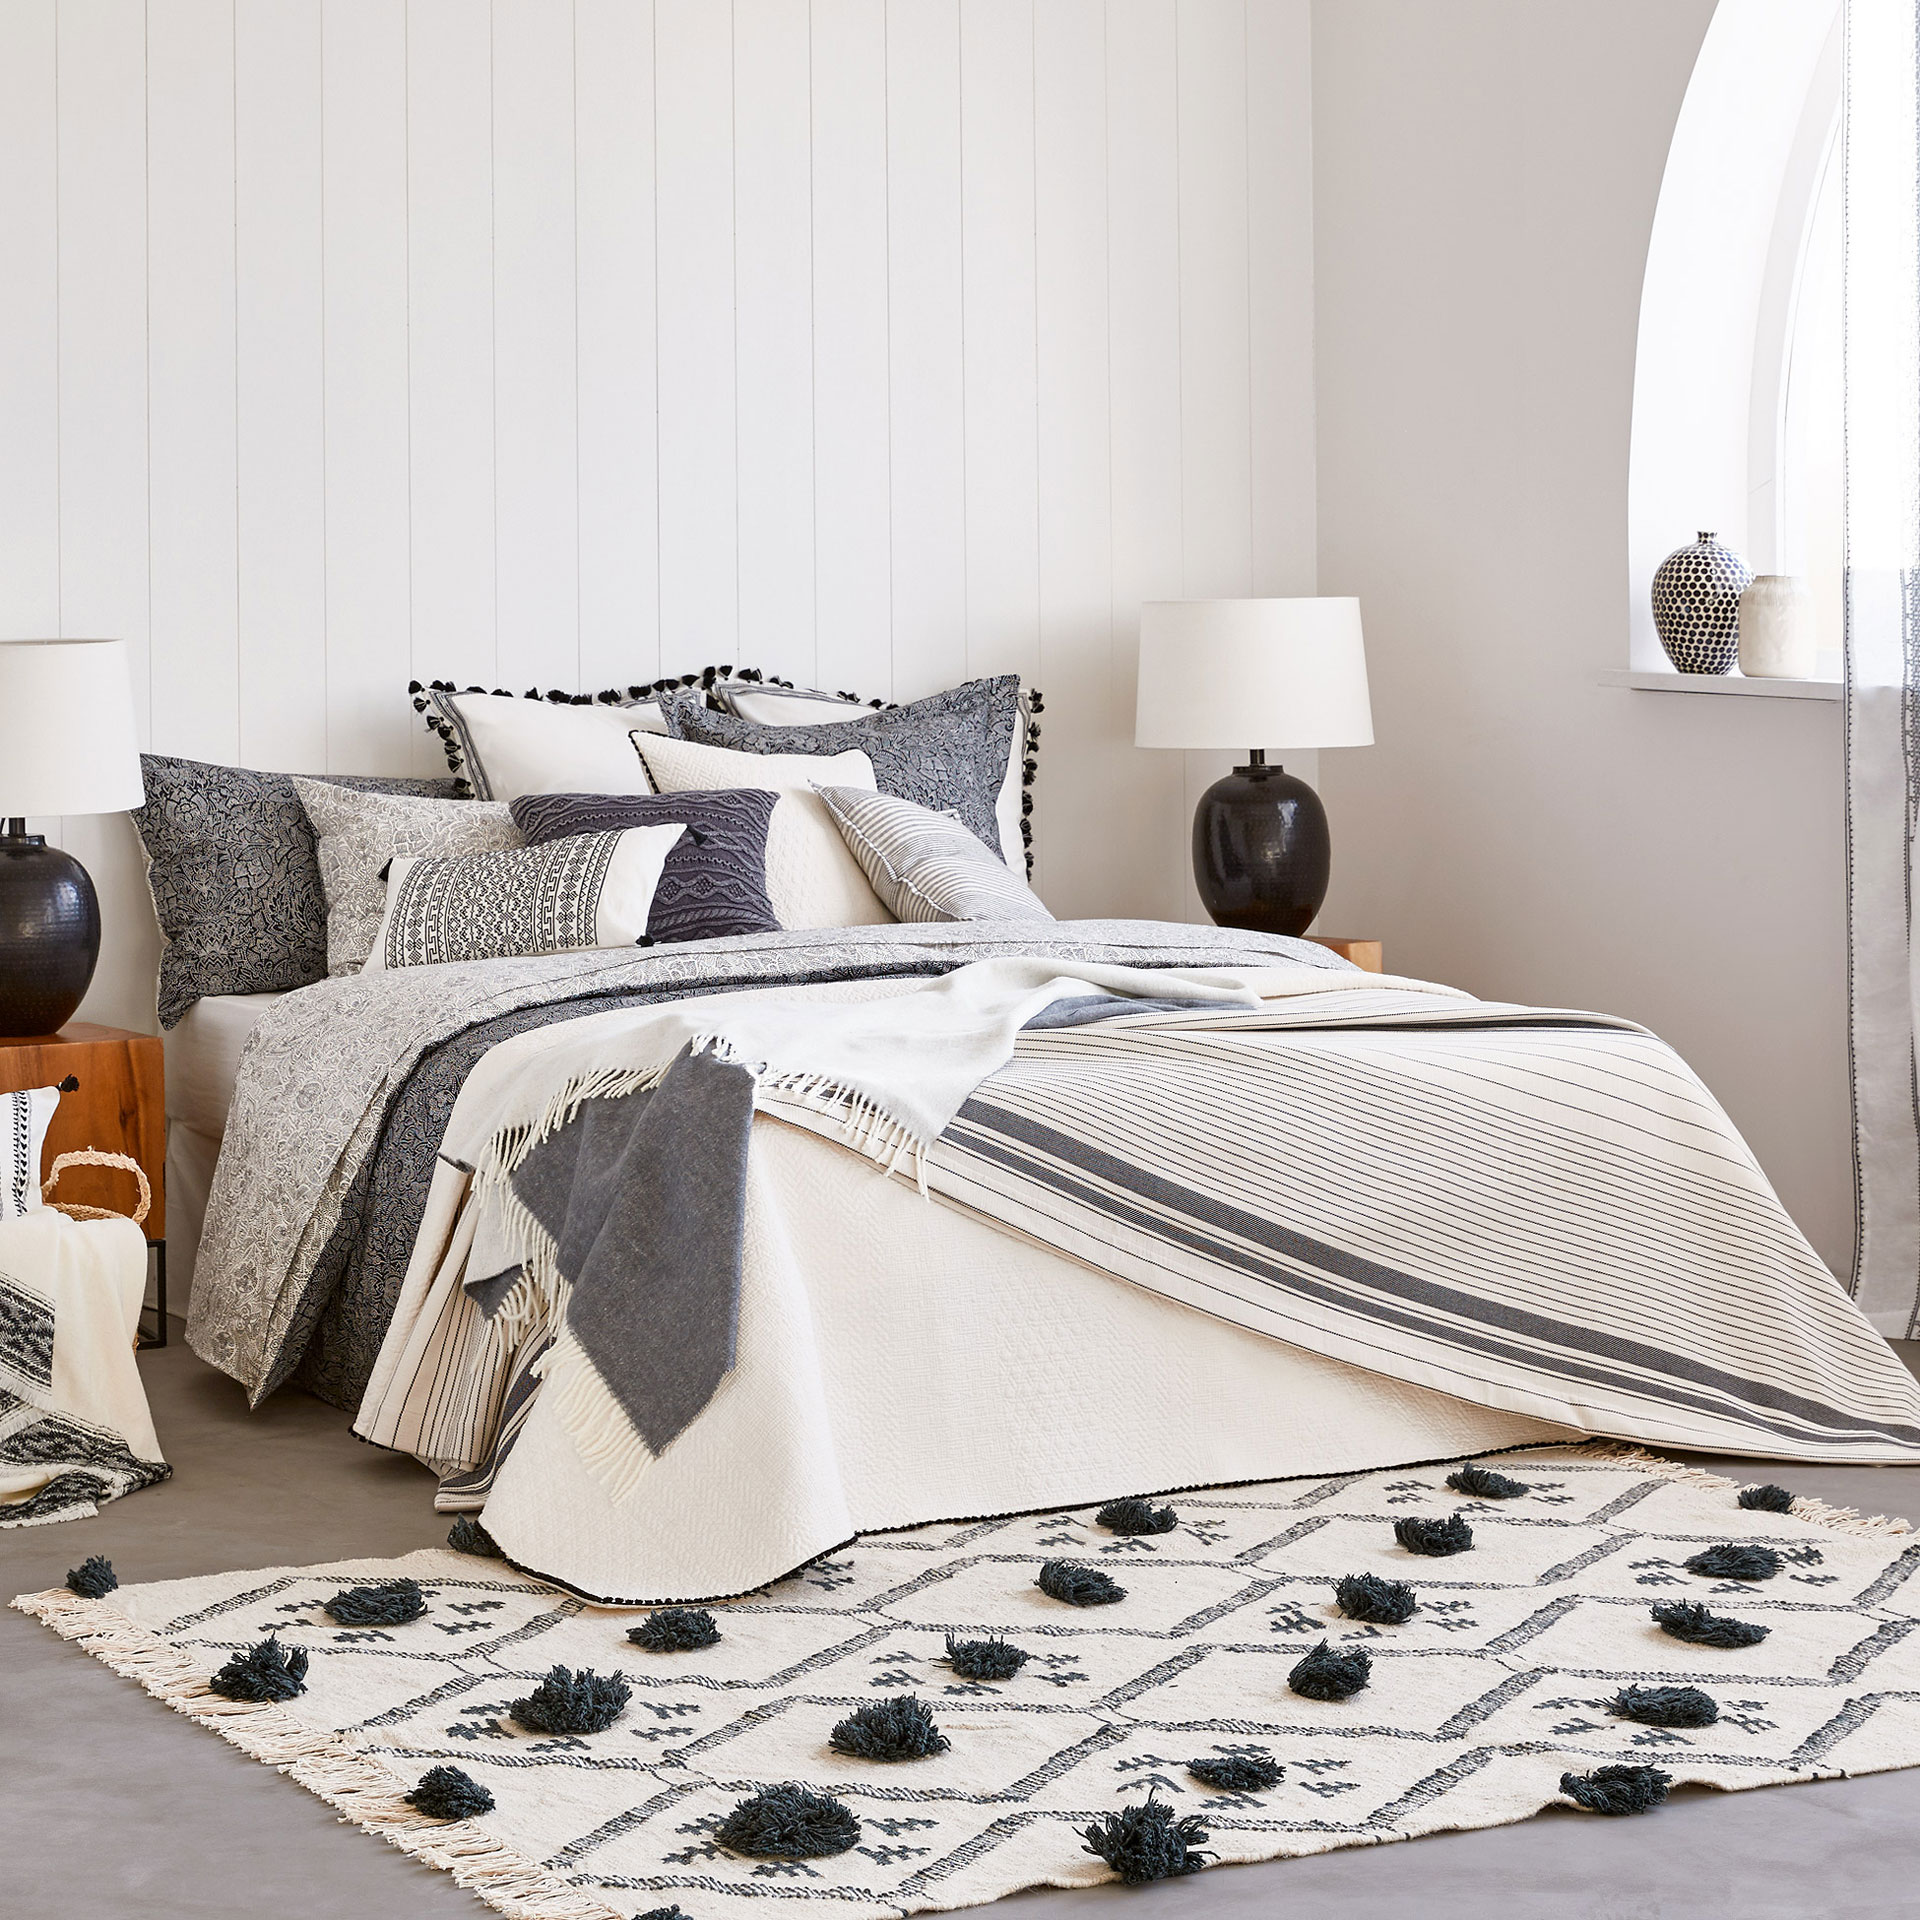 9 Cute Summer Comforters To Swap For Your Winter Duvet